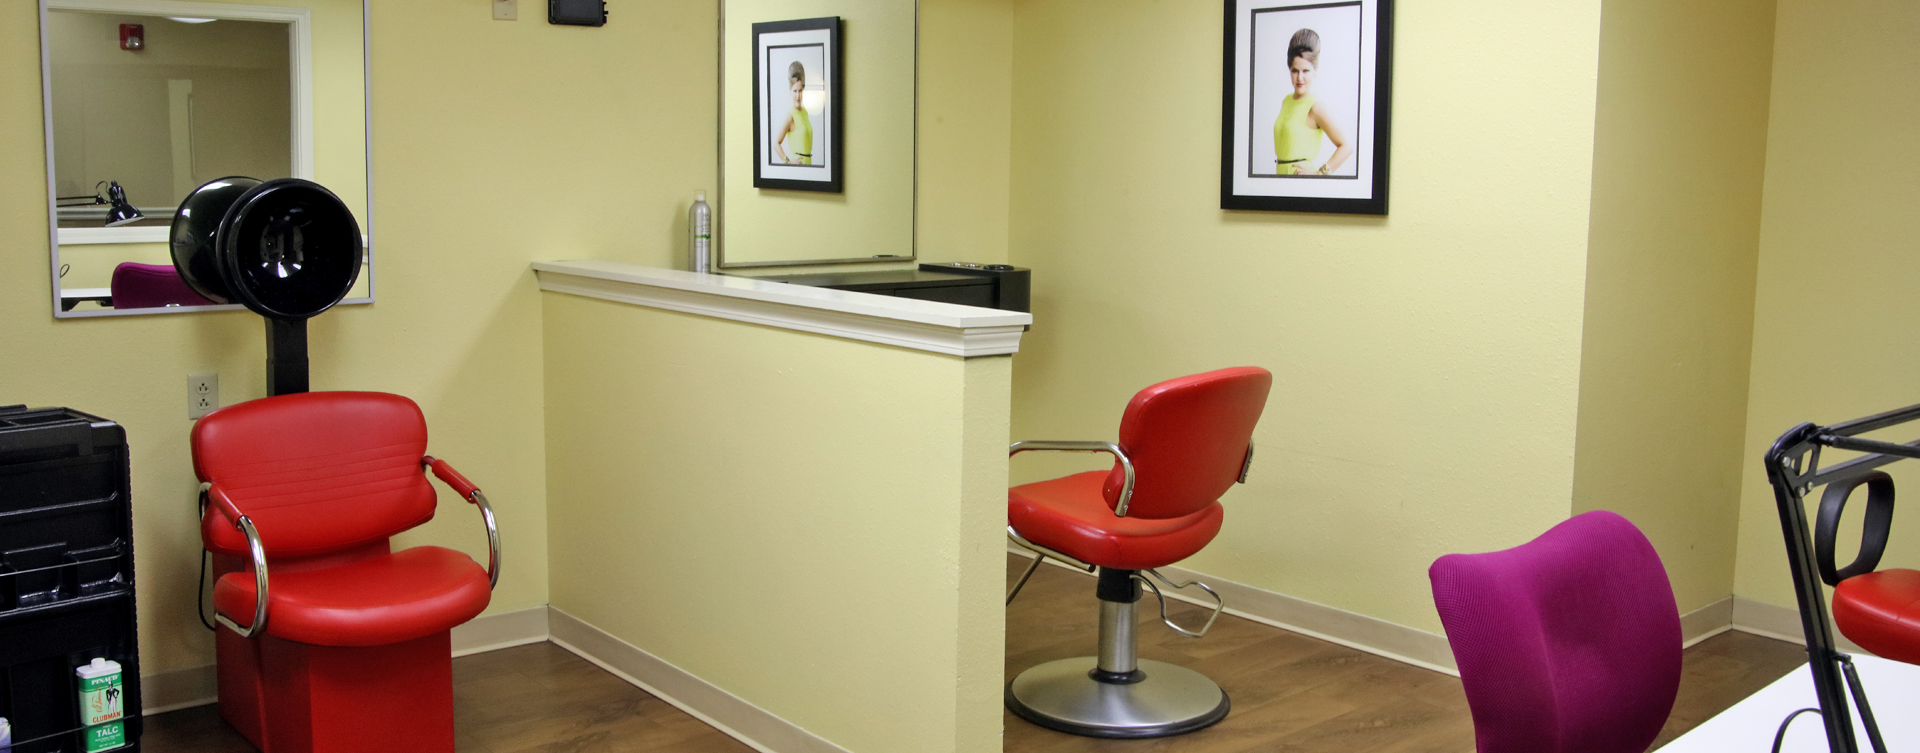 Strut on in and find out what the buzz is all about in the salon at Bickford of Rockford